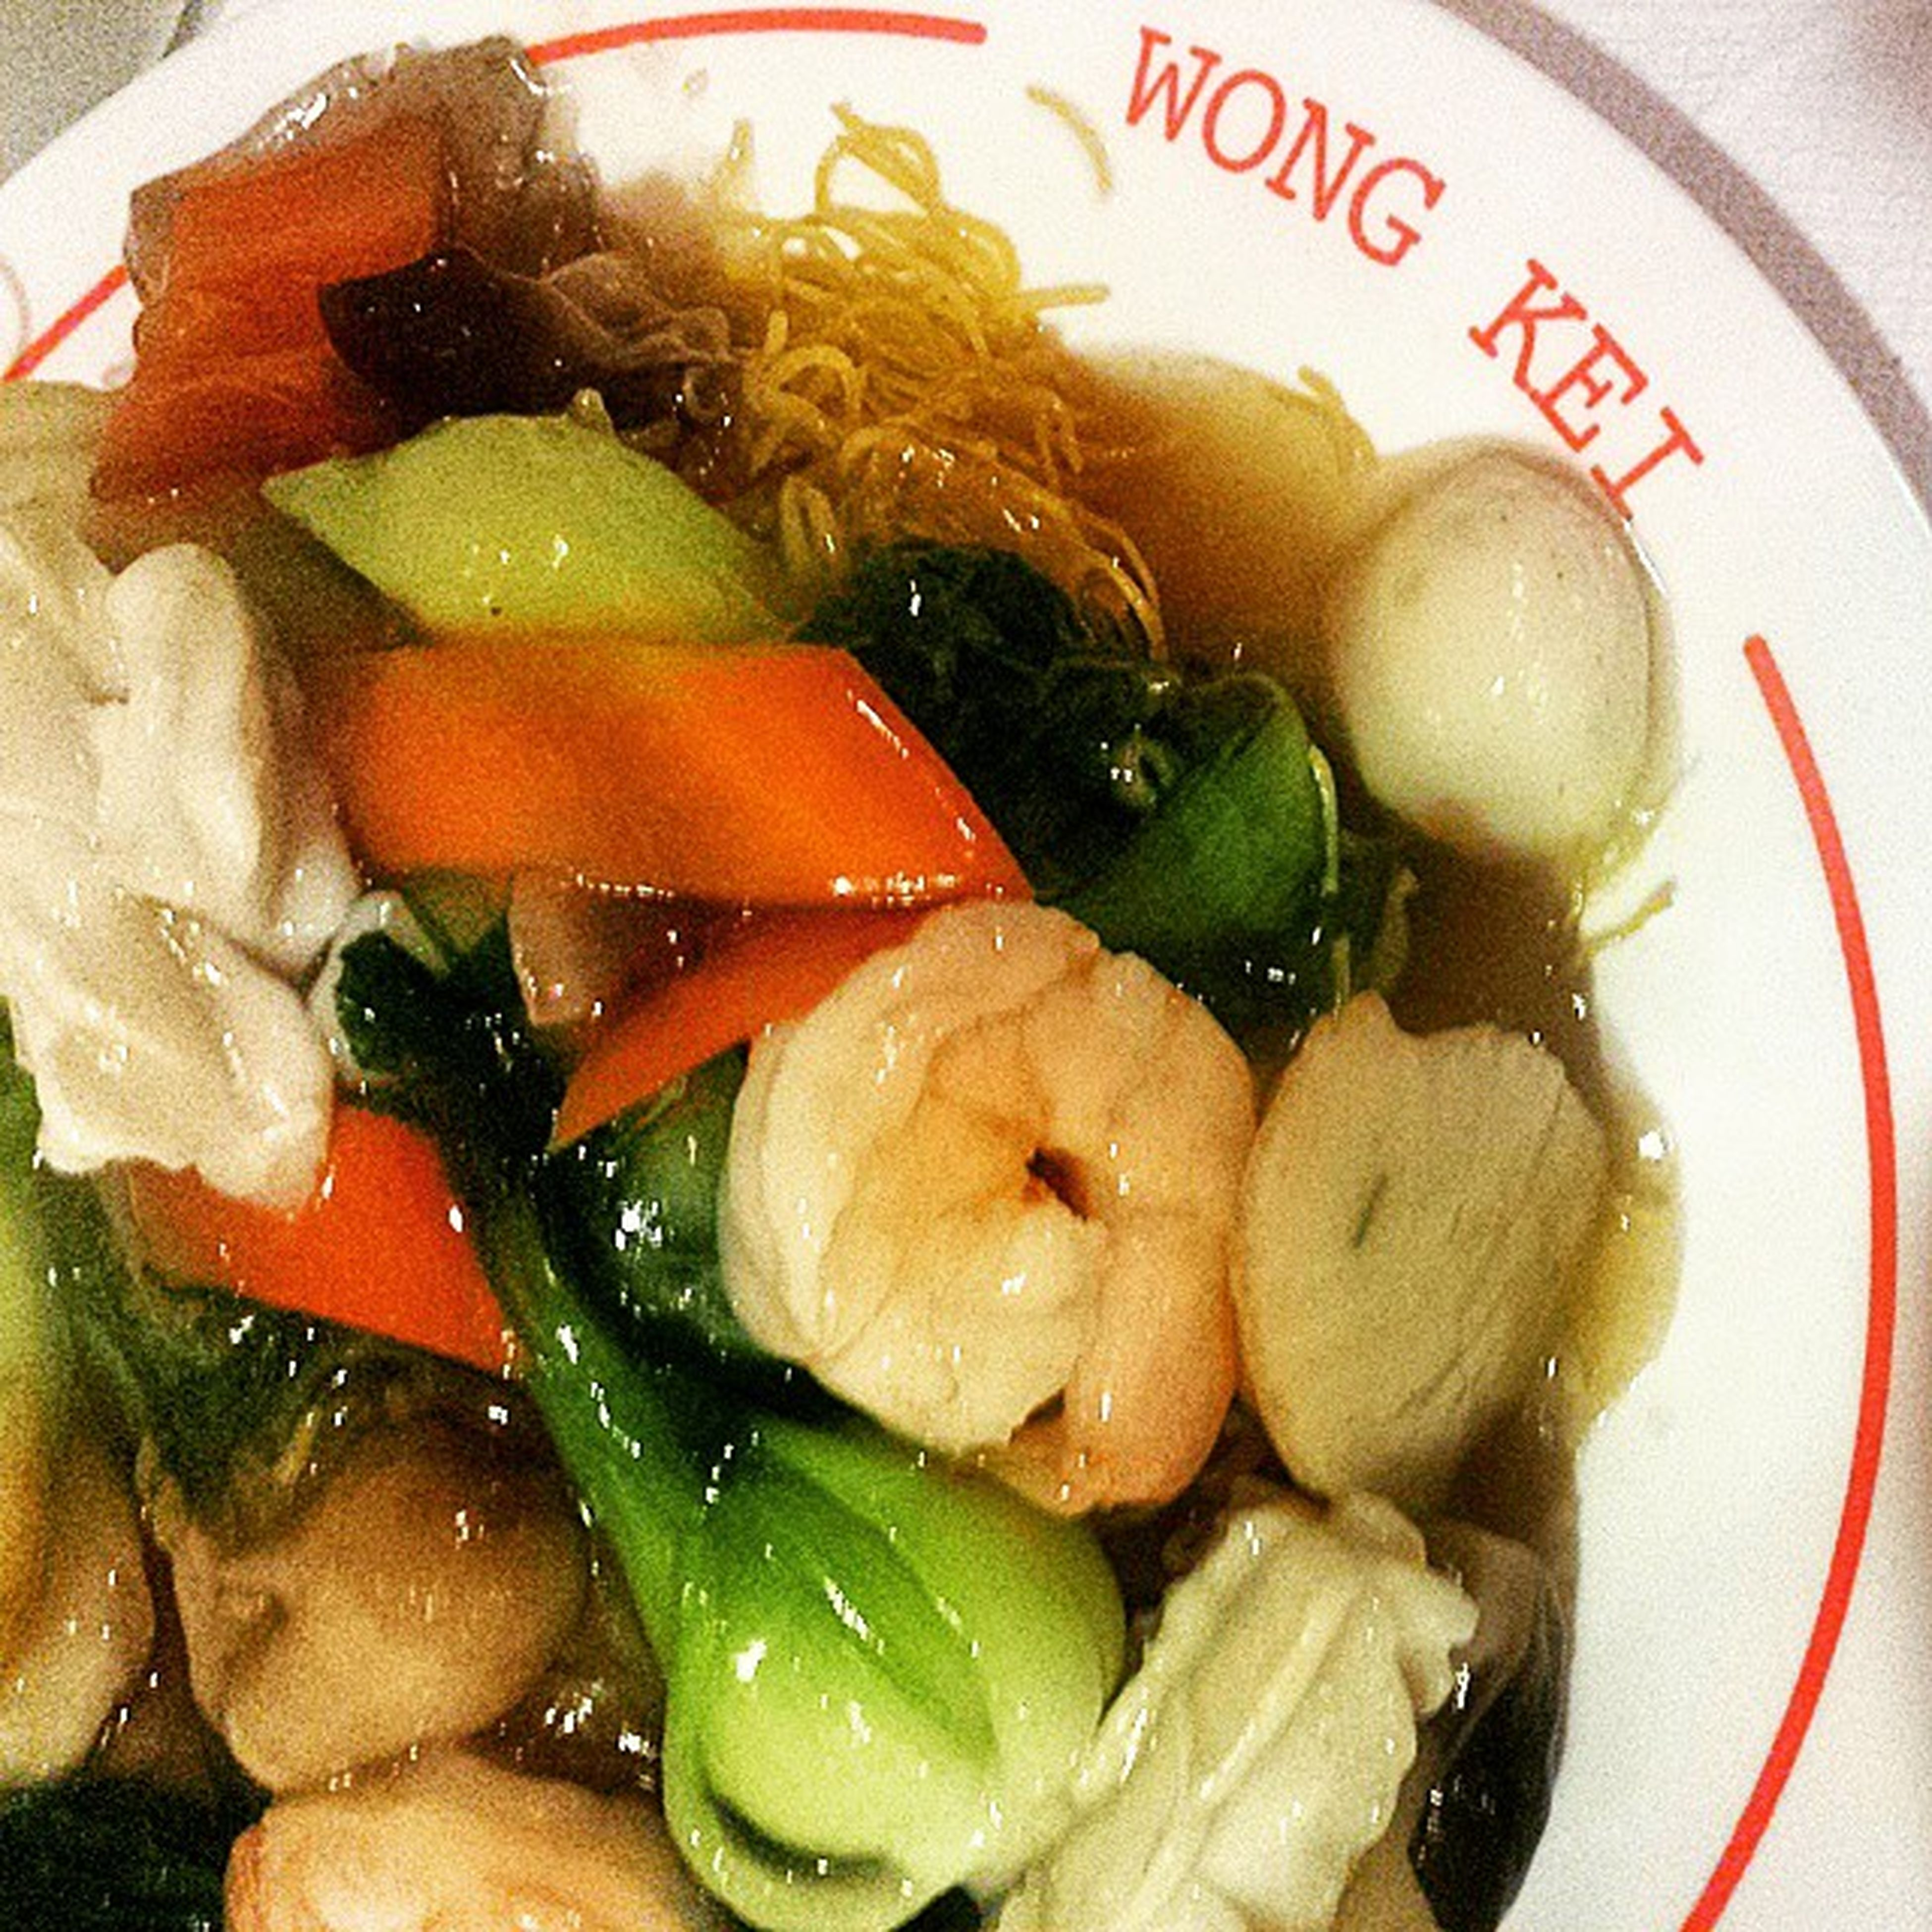 DAY 7 OF LENT | DINNER | MixedSeafoodFriedNoodle WongKei Lent Nomeat NoBread NoRice HealthyLiving IsThisHealthy LyingToMyself